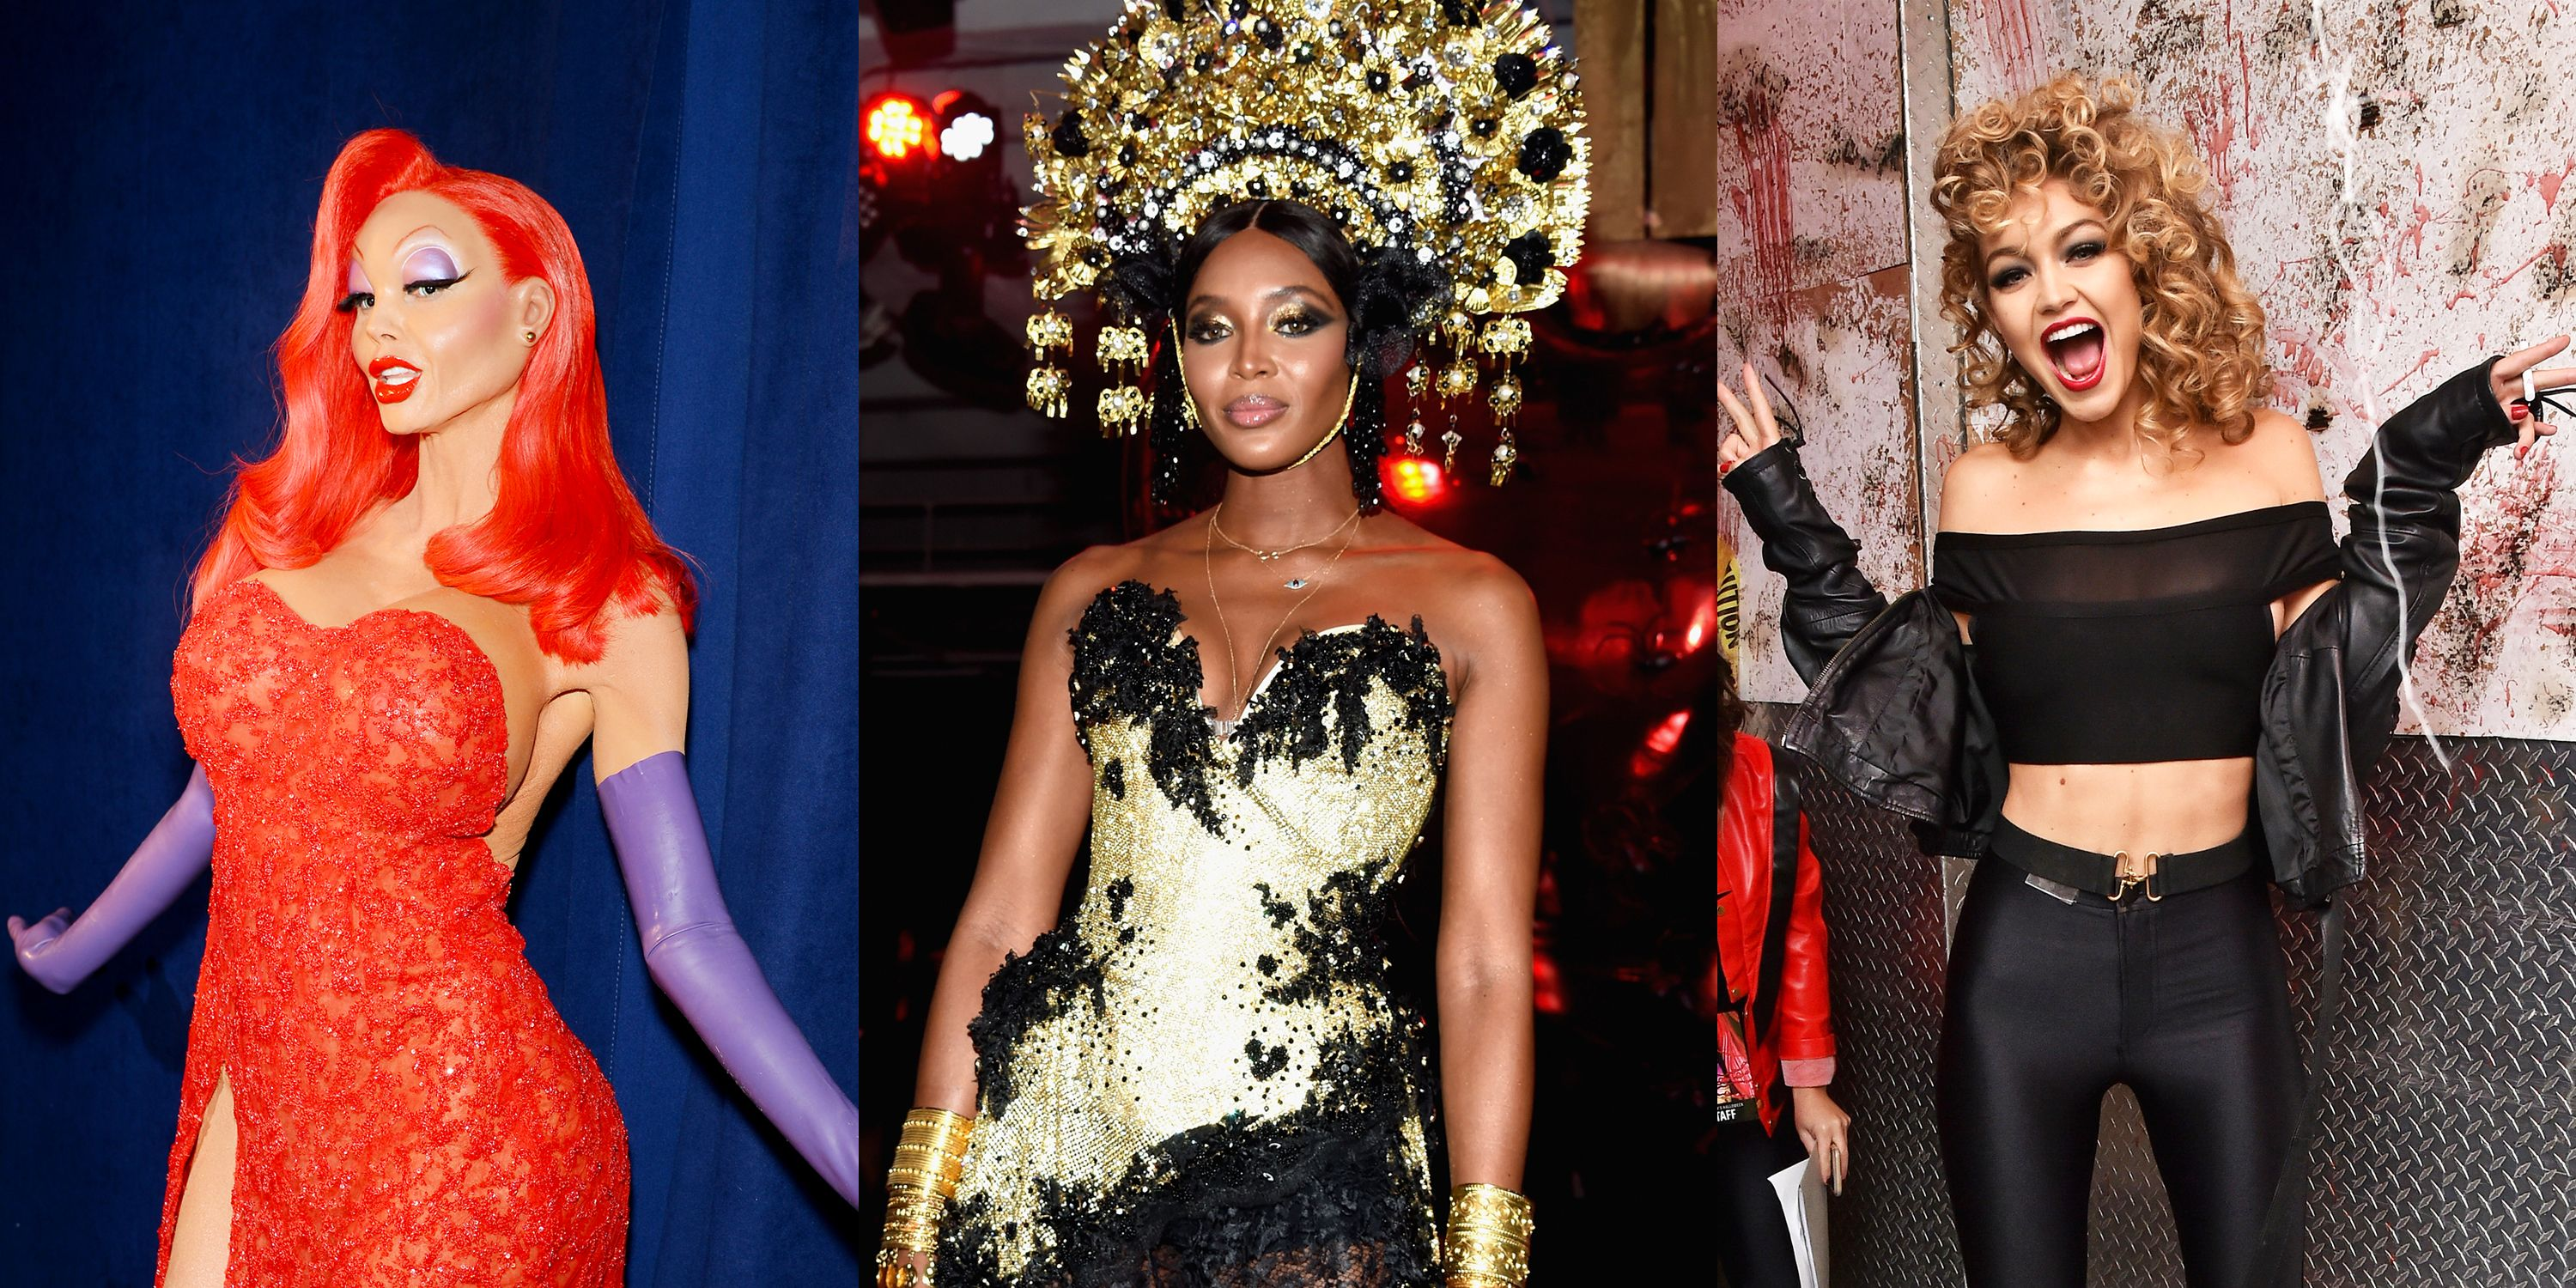 Celebrities In Halloween Costumes 2020 20 Best Celebrity Halloween Costumes of All Time   Epic Celebrity